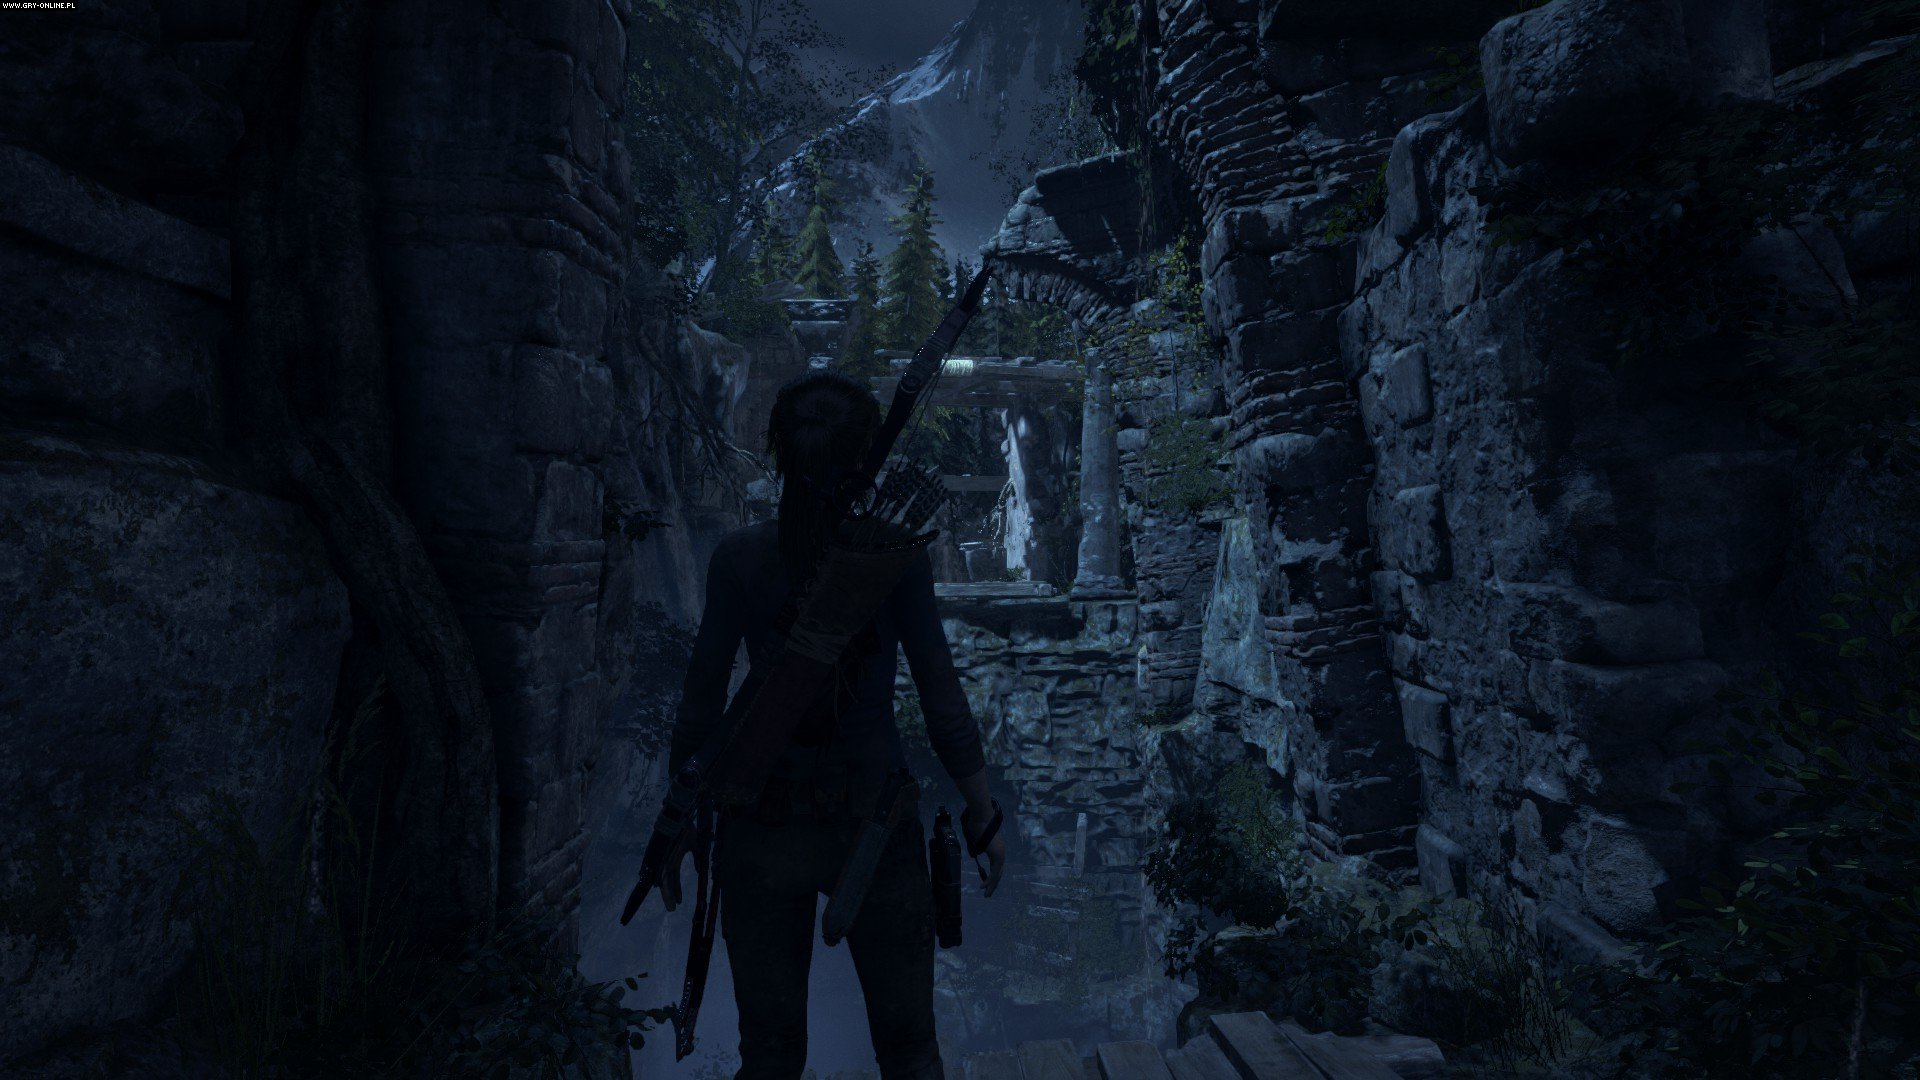 Rise of the Tomb Raider PC, XONE Games Image 40/126, Crystal Dynamics, Square-Enix / Eidos